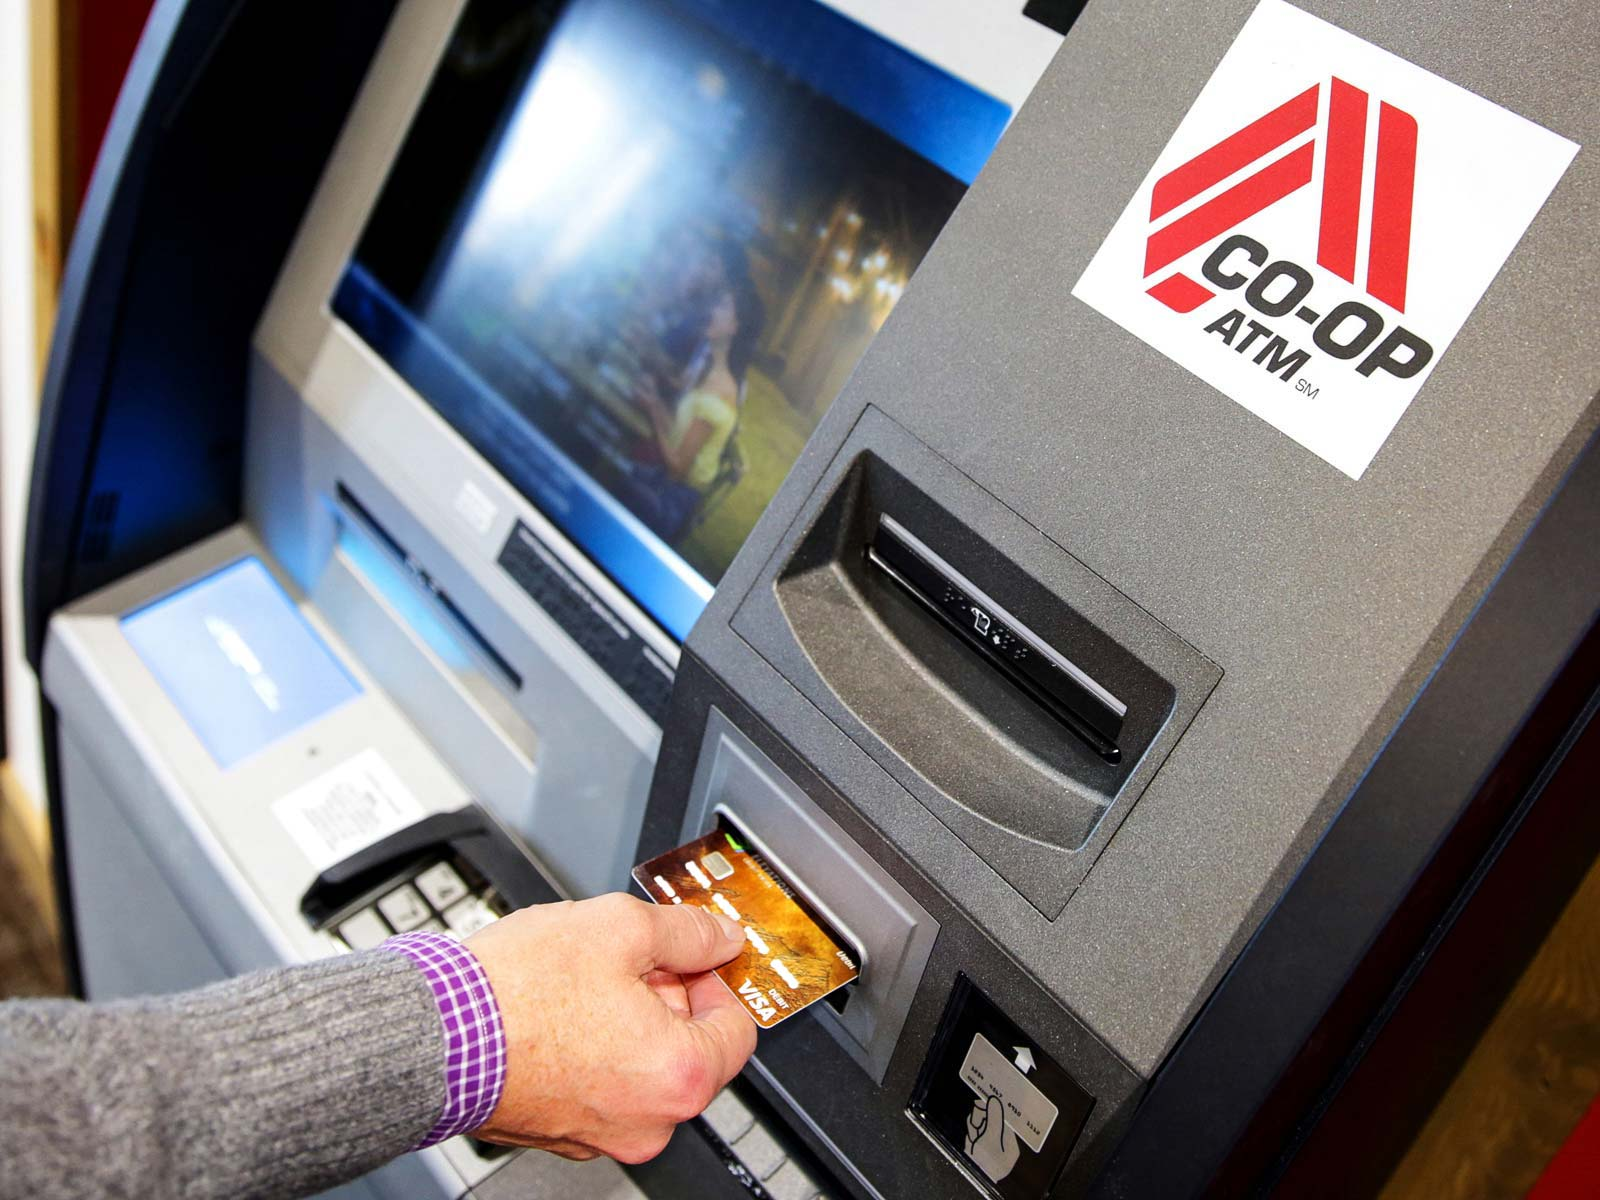 Man inserts bank card into Co-Op ATM